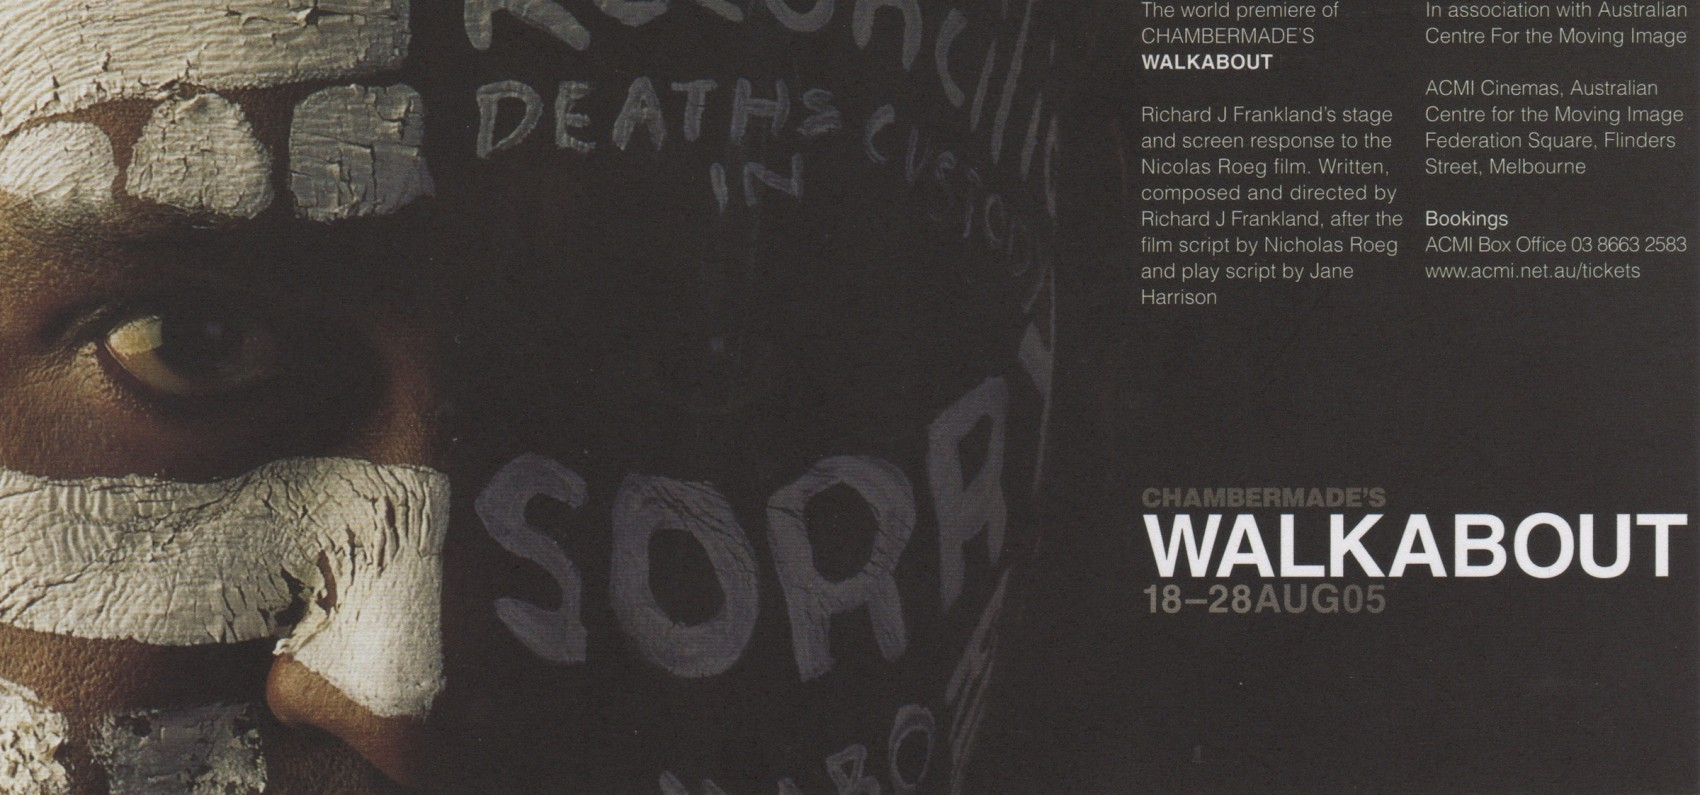 Promo image: A brown skinned face with white paint on it including words Deaths in Custody and Sorry with words Walkabout 18-28 Aug 05